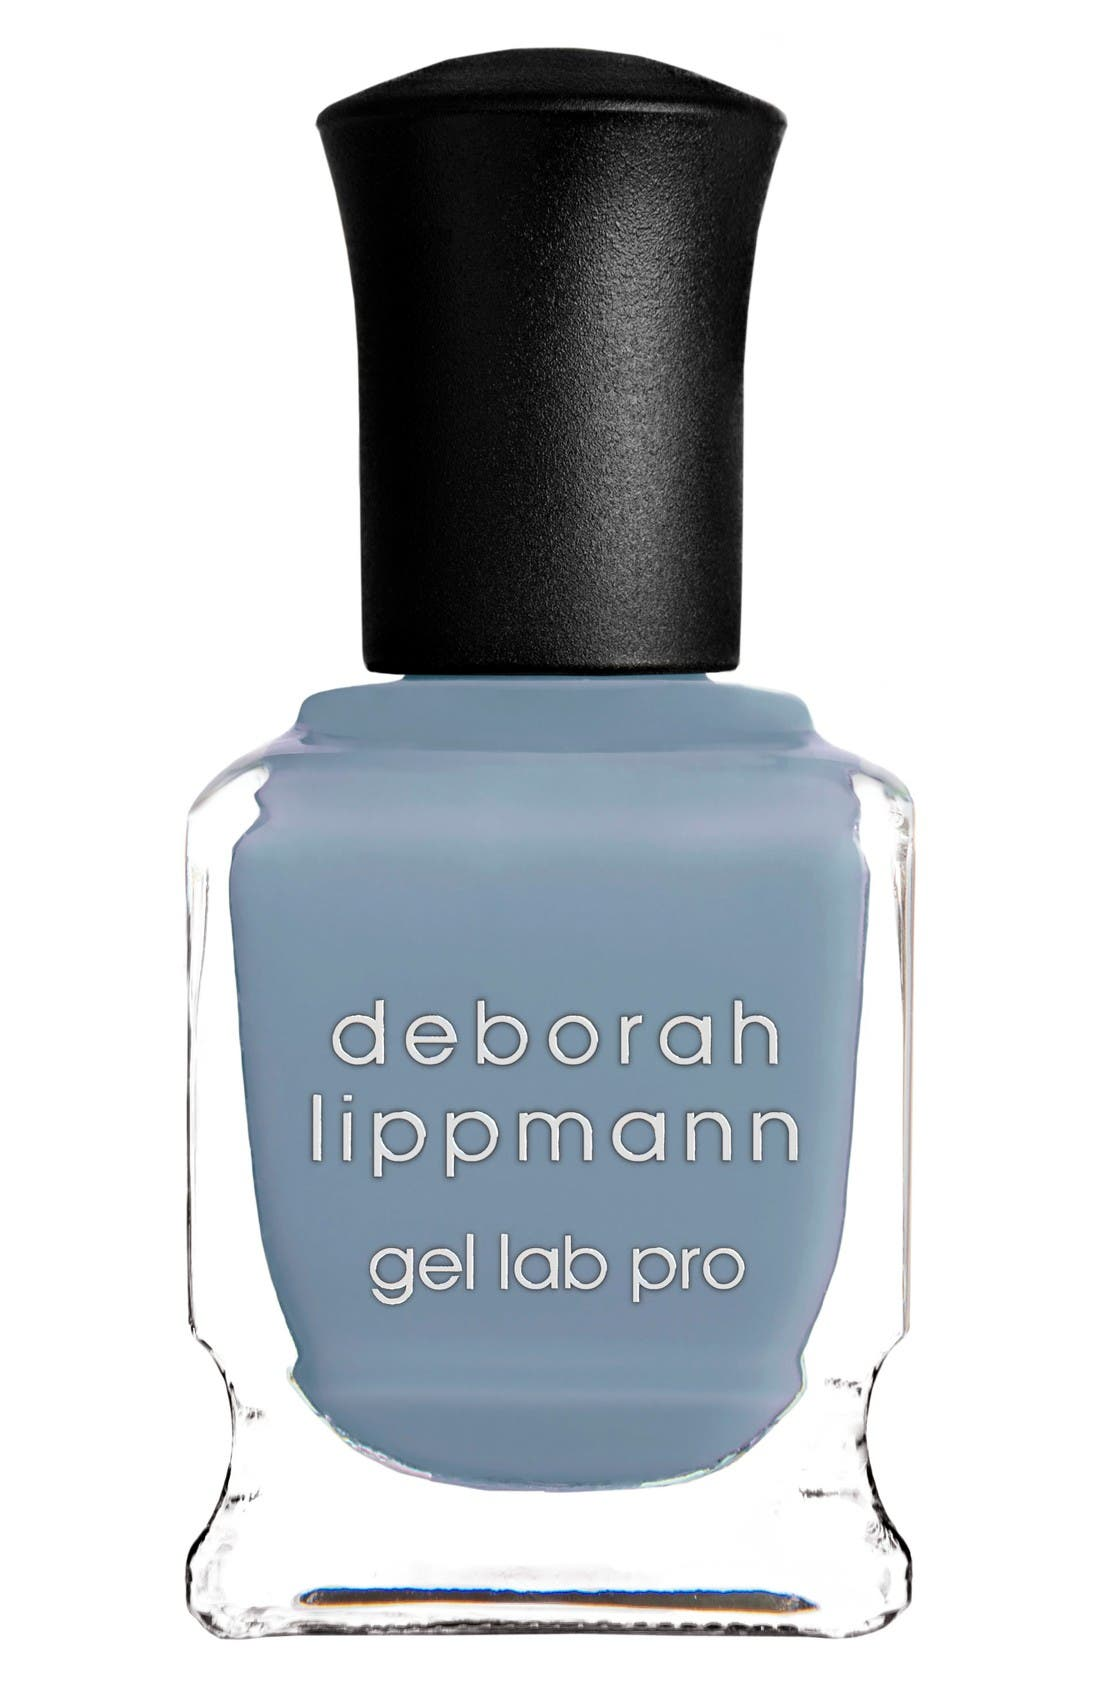 Deborah Lippmann Message in a Bottle Gel Lab Pro Nail Color